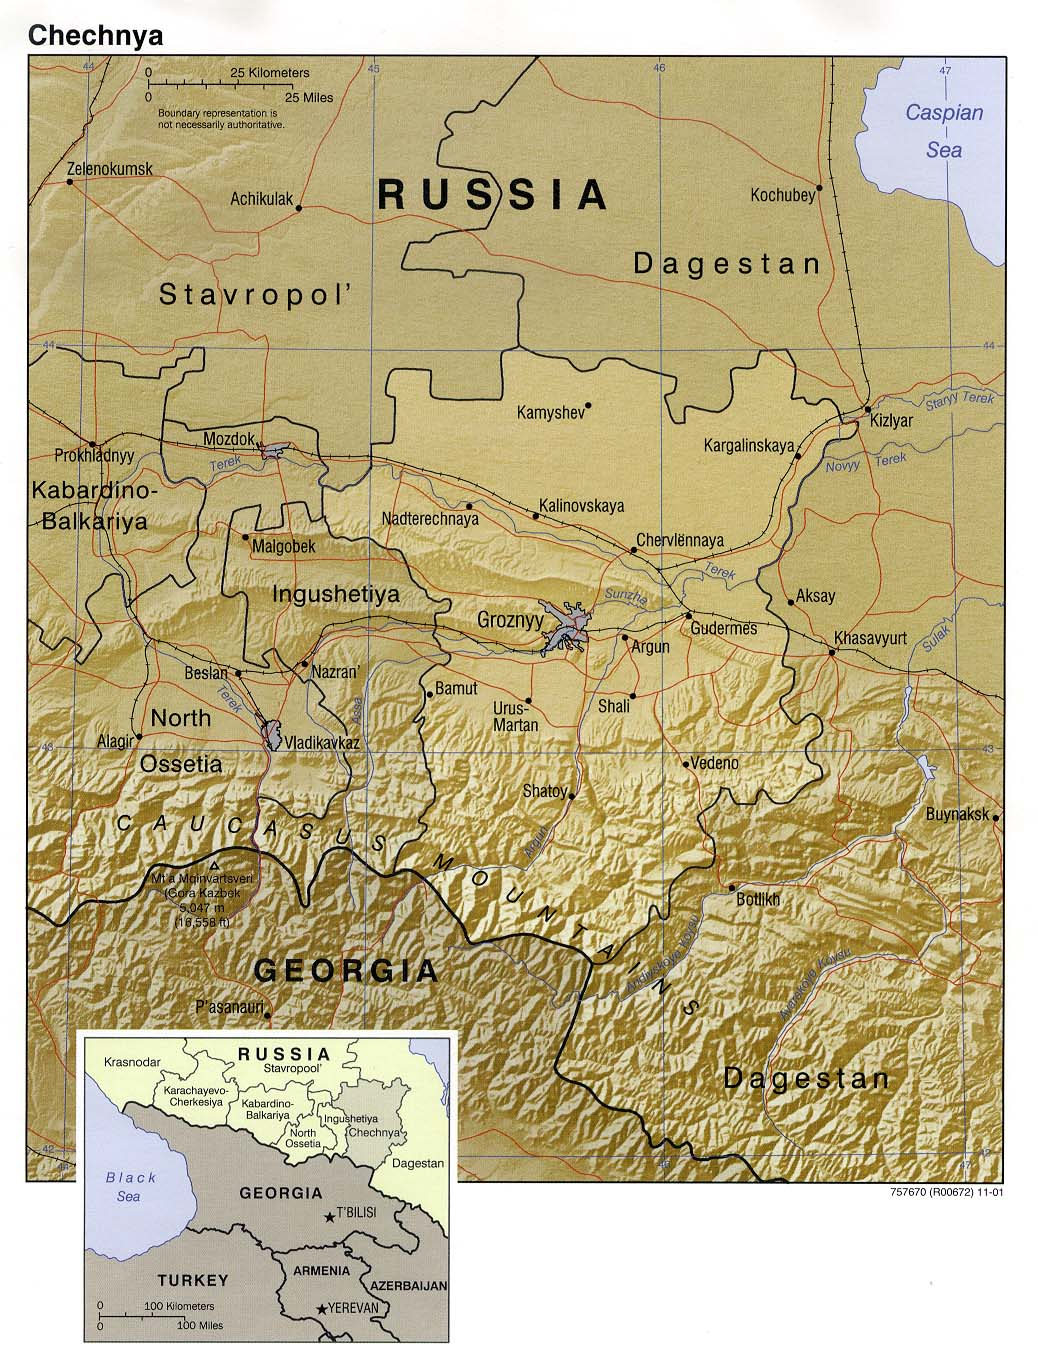 Chechnya country map see map details from www lib utexas edu